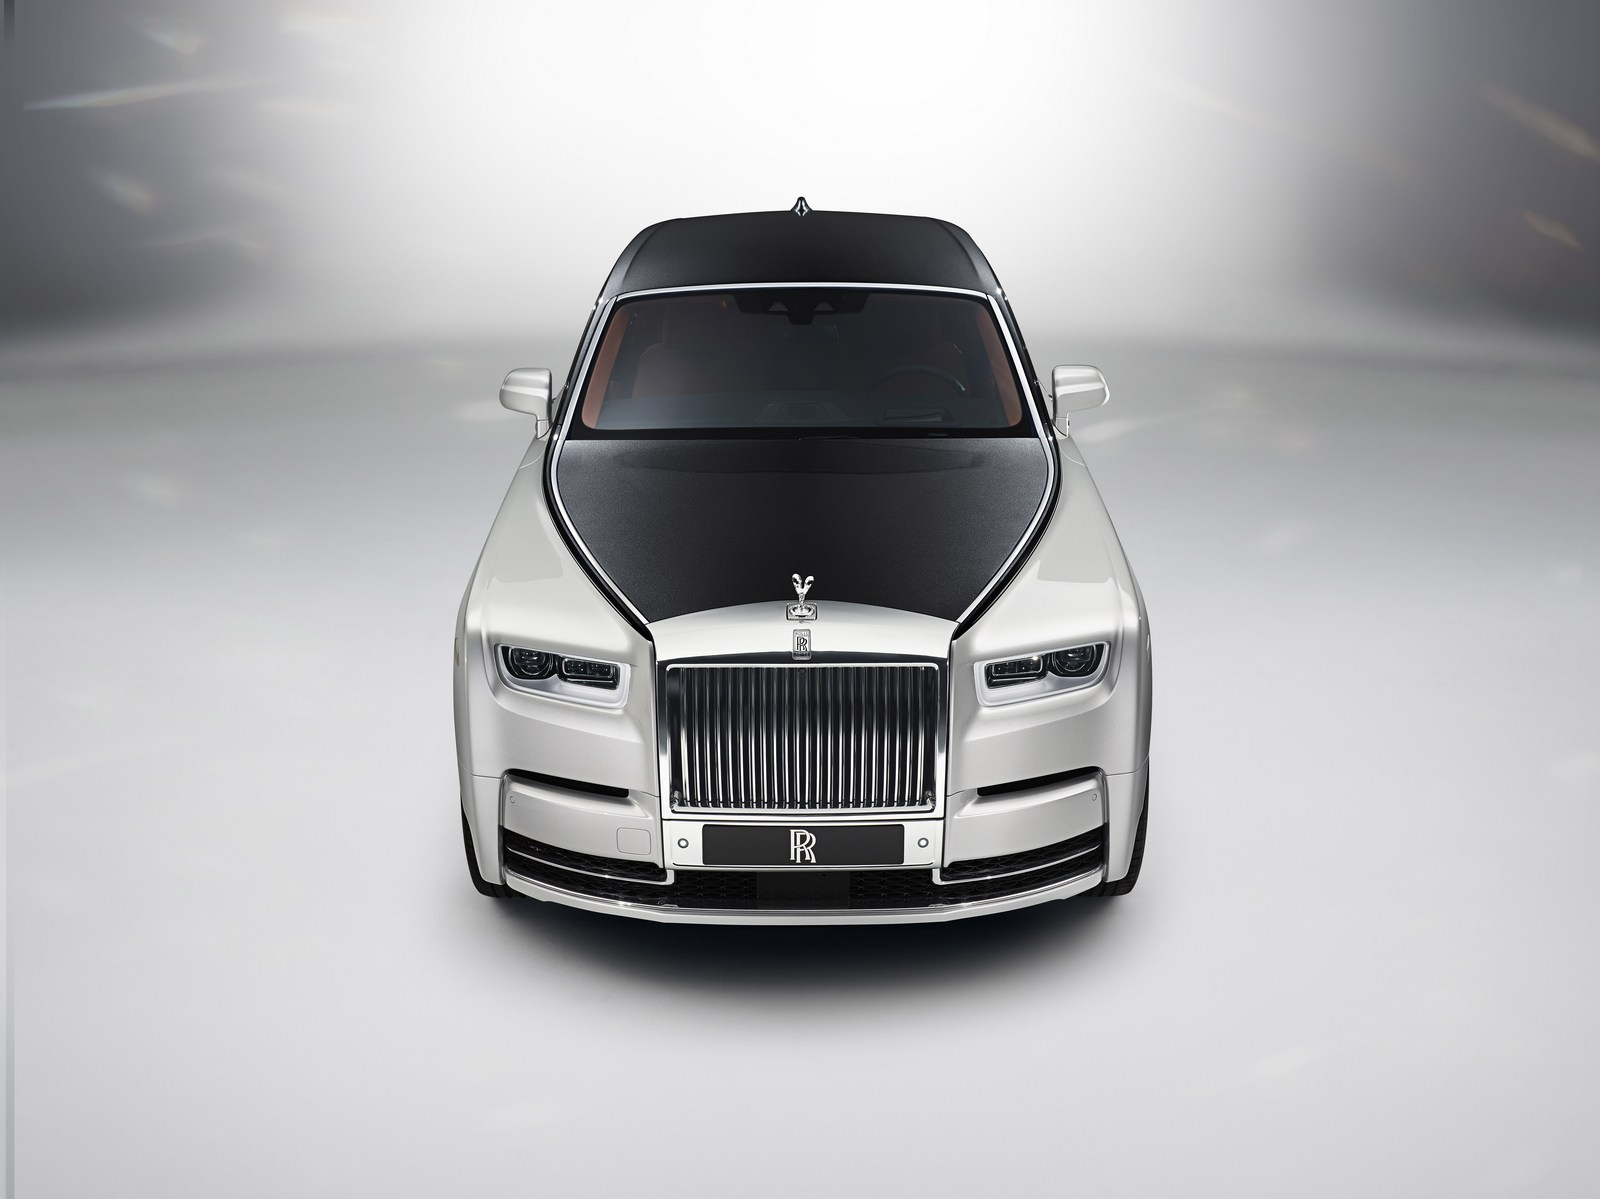 2018_Rolls-Royce_Phantom_19